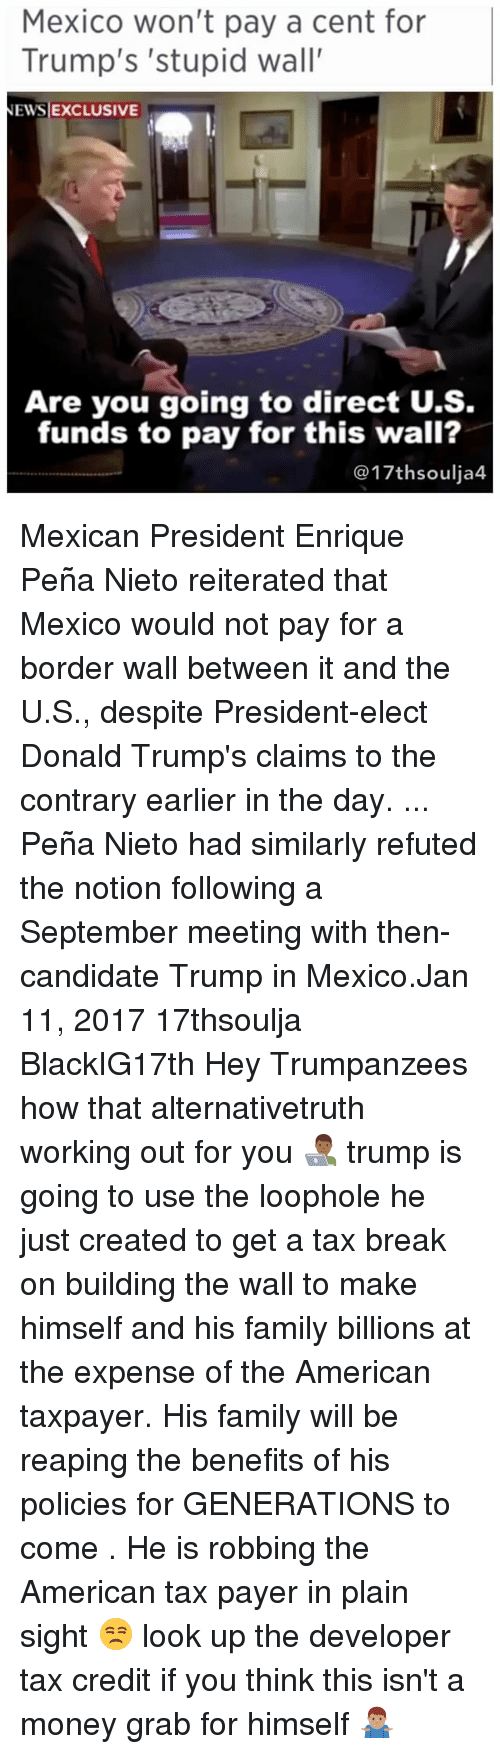 Enrique Peña Nieto: Mexico won't pay a cent for  Trump's 'stupid wall'  NEWS EXCLUSIVE  Are you going to direct U.S.  funds to pay for this wall?  @17th soulja4. Mexican President Enrique Peña Nieto reiterated that Mexico would not pay for a border wall between it and the U.S., despite President-elect Donald Trump's claims to the contrary earlier in the day. ... Peña Nieto had similarly refuted the notion following a September meeting with then-candidate Trump in Mexico.Jan 11, 2017 17thsoulja BlackIG17th Hey Trumpanzees how that alternativetruth working out for you 👨🏾‍💻 trump is going to use the loophole he just created to get a tax break on building the wall to make himself and his family billions at the expense of the American taxpayer. His family will be reaping the benefits of his policies for GENERATIONS to come . He is robbing the American tax payer in plain sight 😒 look up the developer tax credit if you think this isn't a money grab for himself 🤷🏽‍♂️